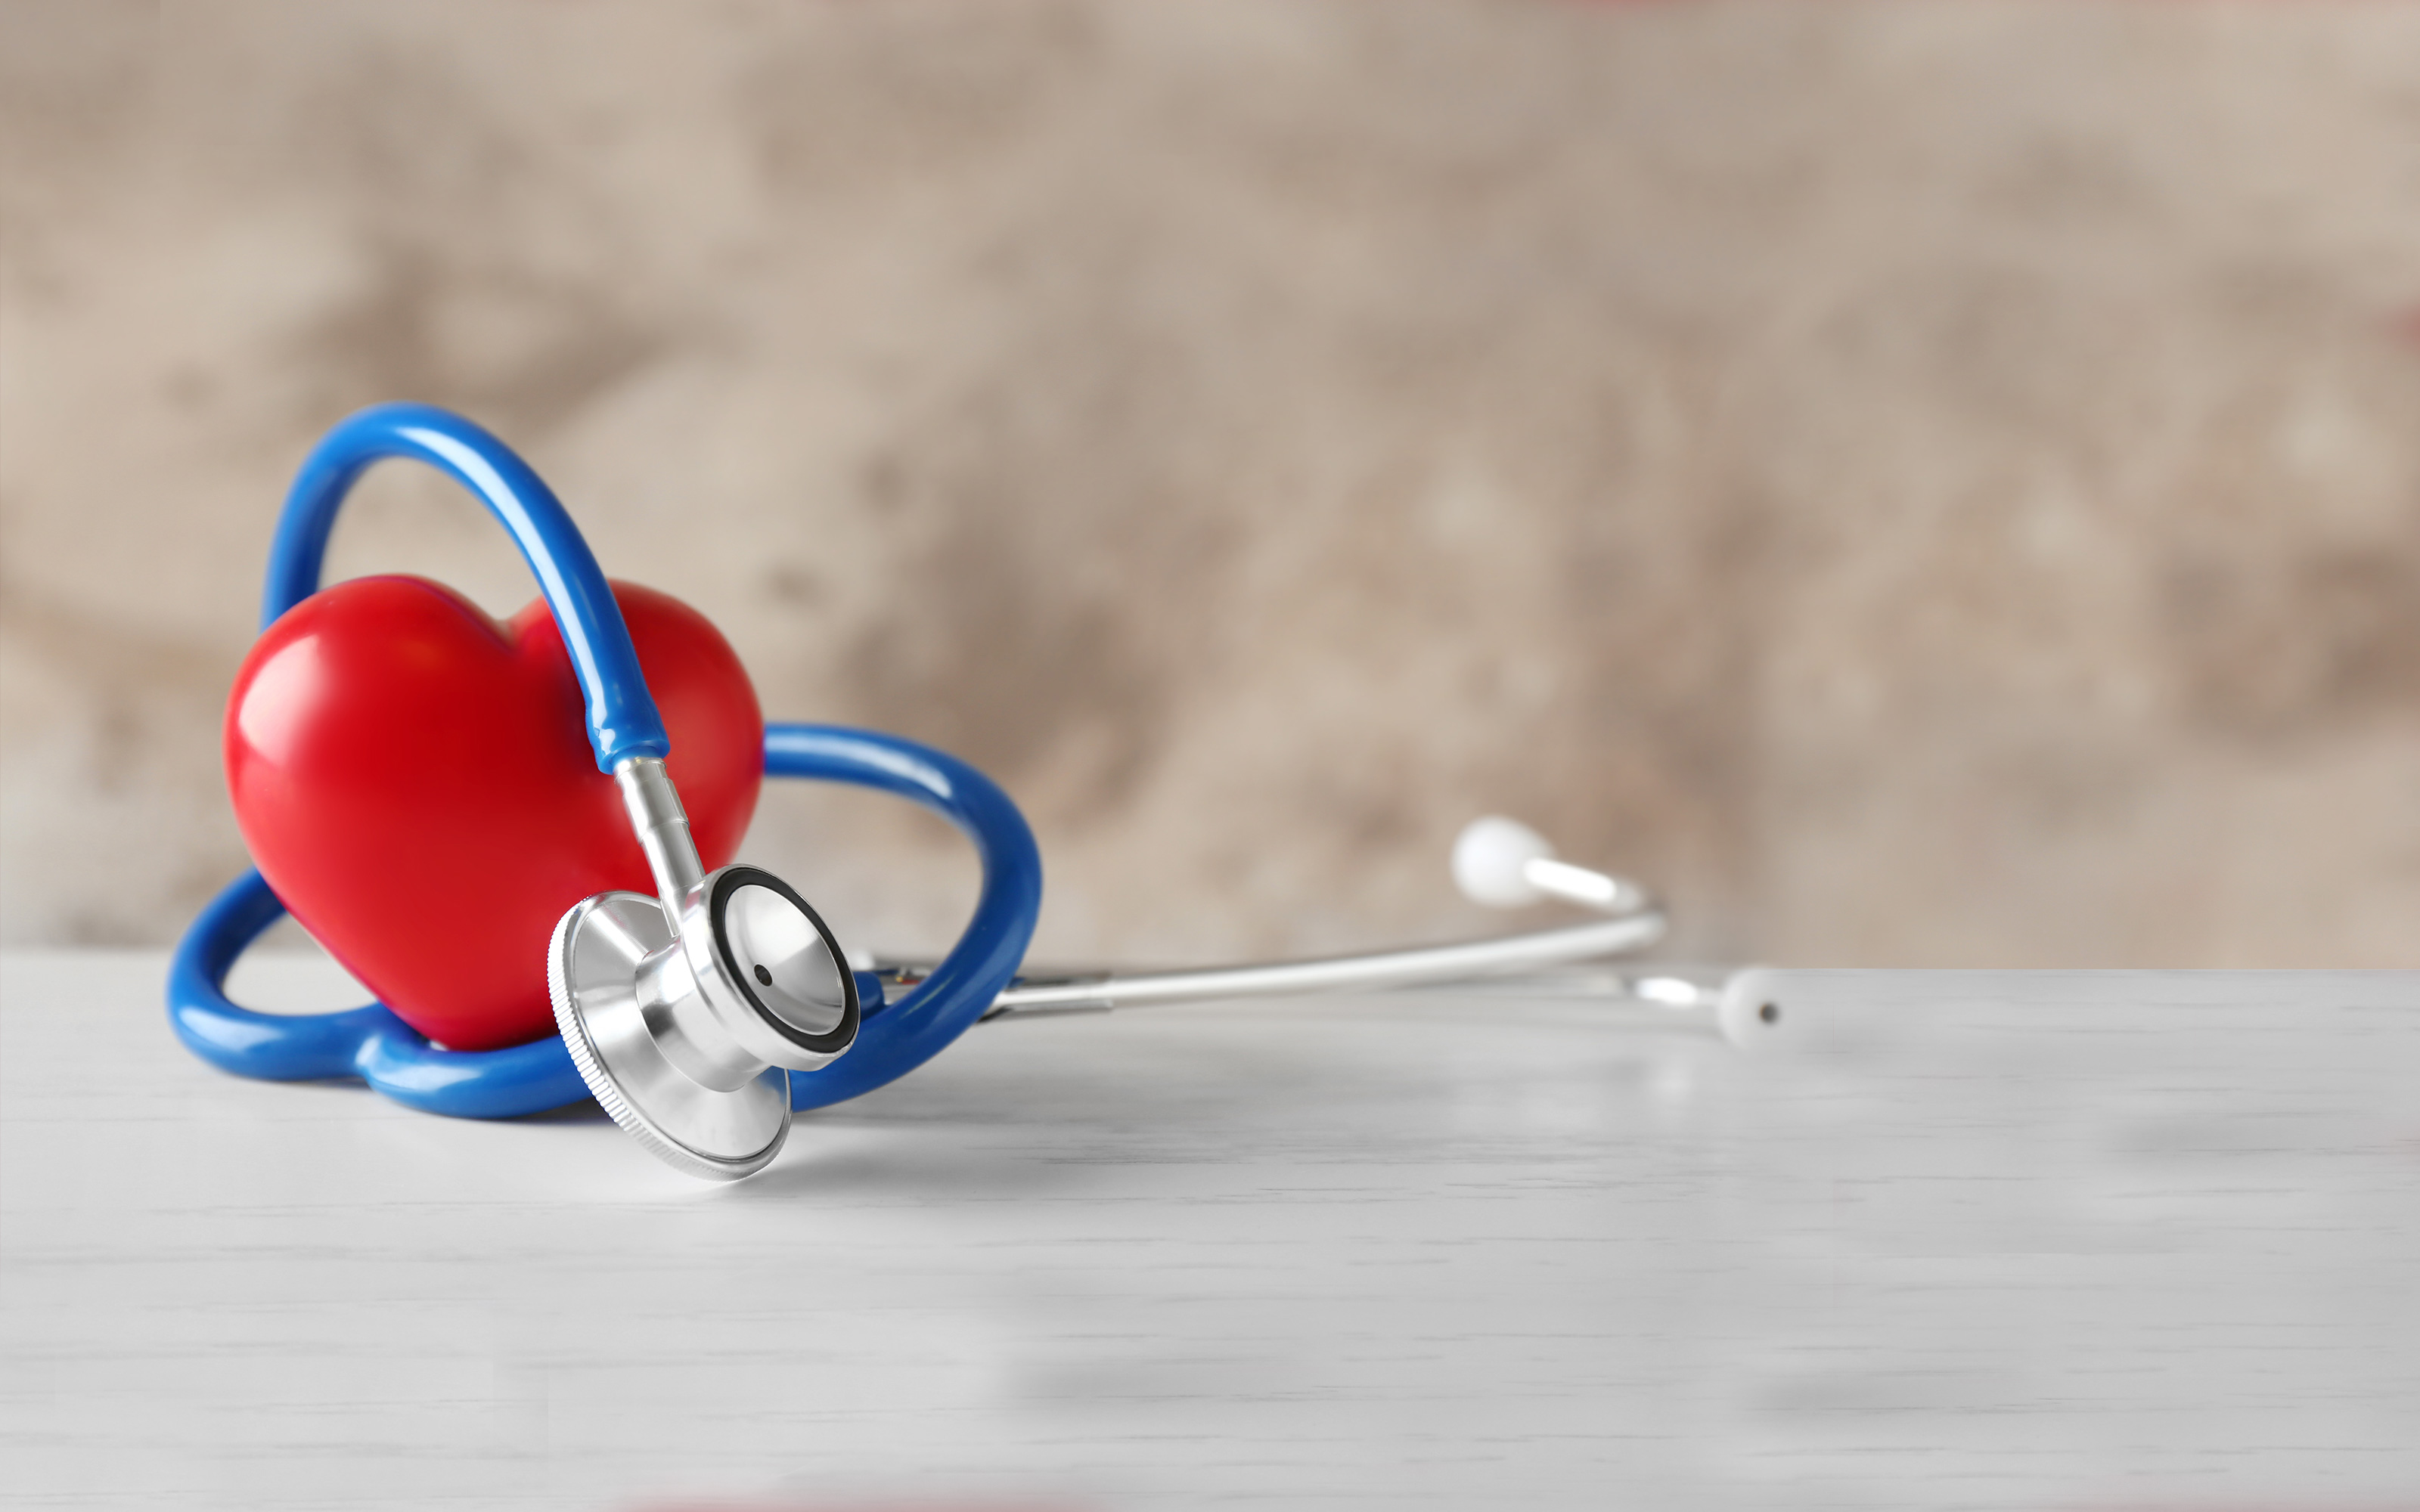 Stethoscope wrapped around a heart